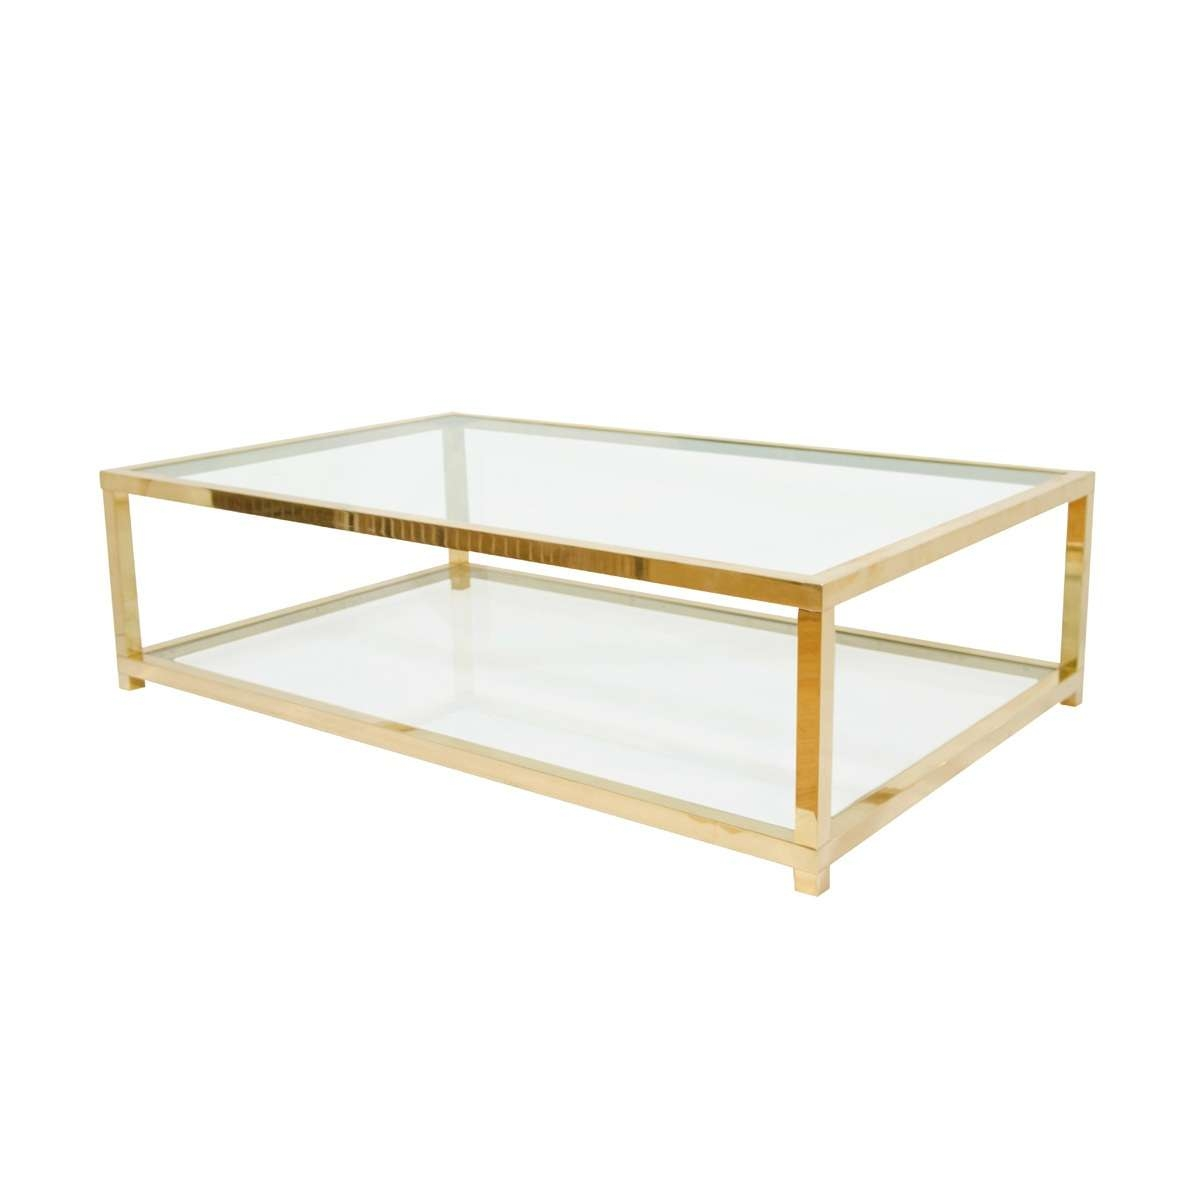 Enchanting Brass Glass Coffee Tables Toronto – Antique Brass Glass Intended For Current Vintage Glass Coffee Tables (View 18 of 20)